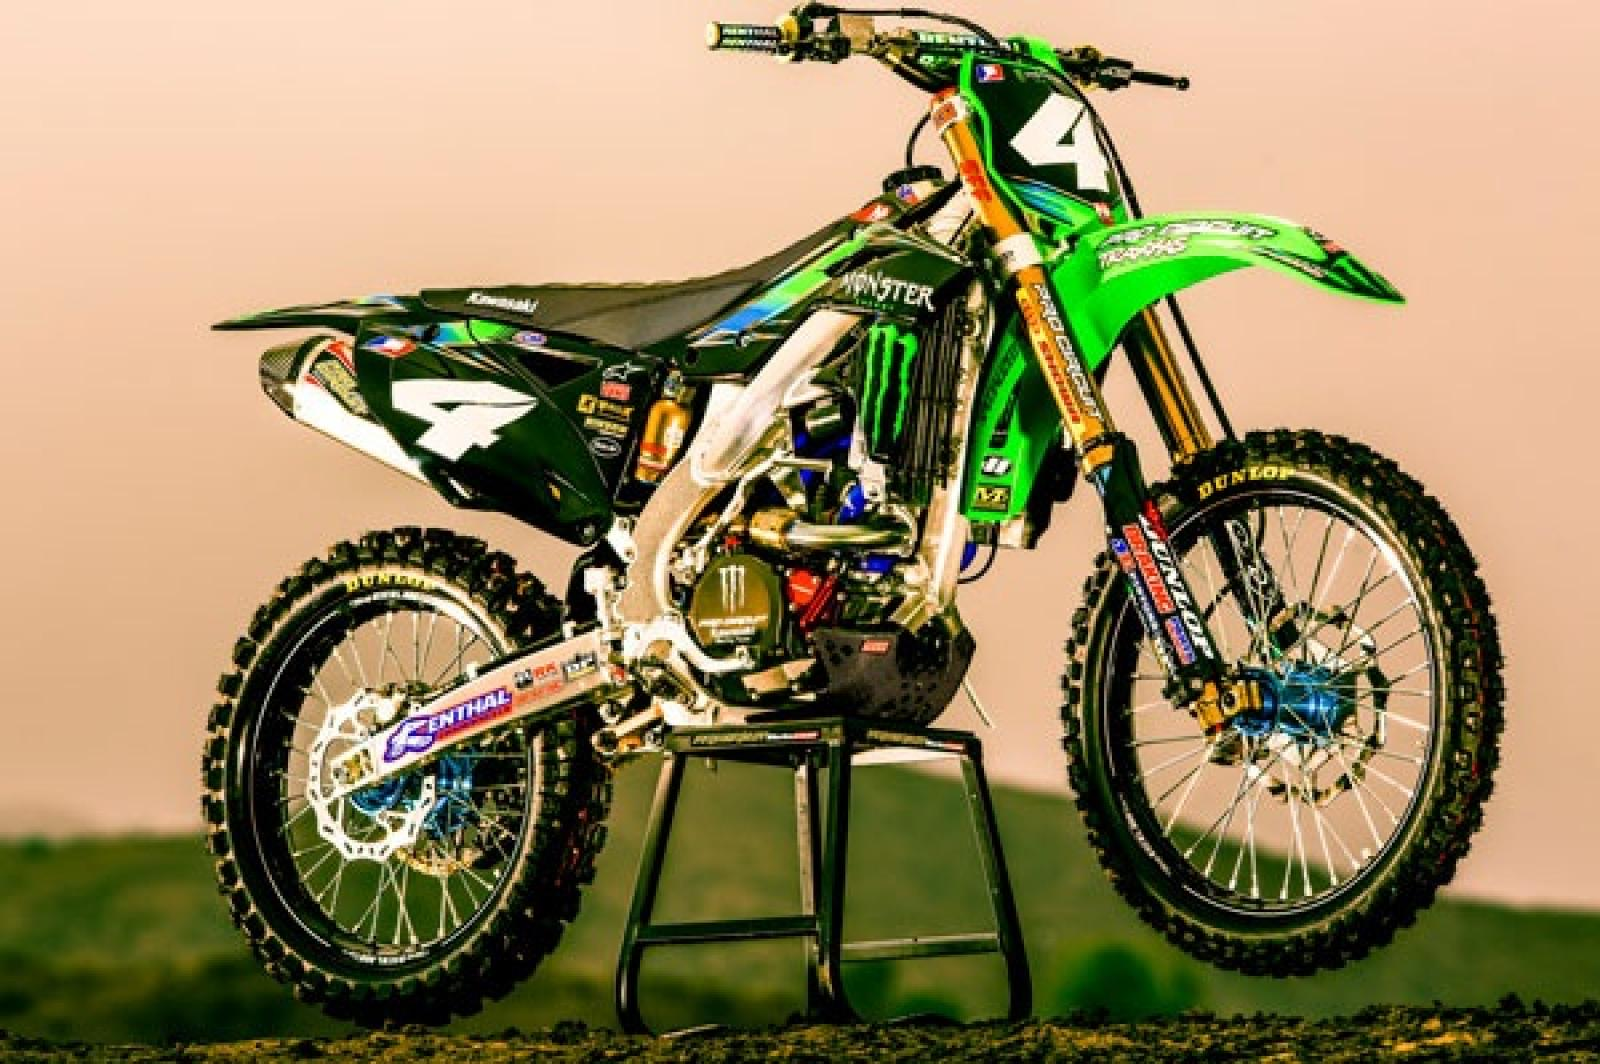 2010 Kawasaki Kx450f Monster Energy 2013 Dodge Dart Wiring Diagram Window General 800 1024 1280 1600 Origin